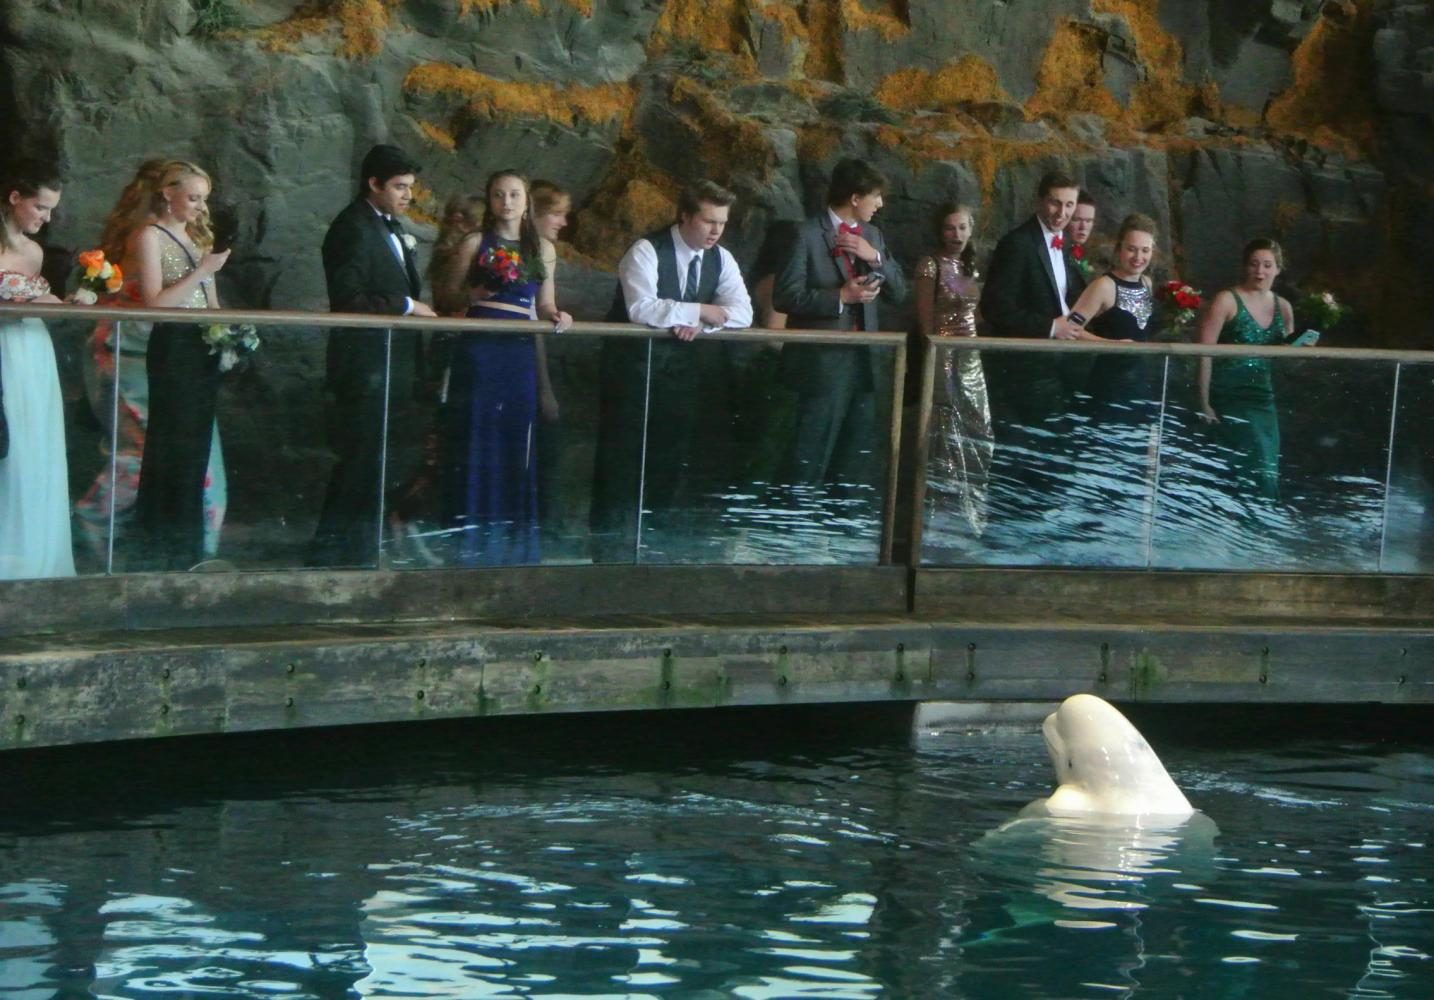 Shortly+after+entering+the+Shedd+Aquarium%2C+students+stop+to+stare+at+one+of+the+beluga+whales+in+the+pool.